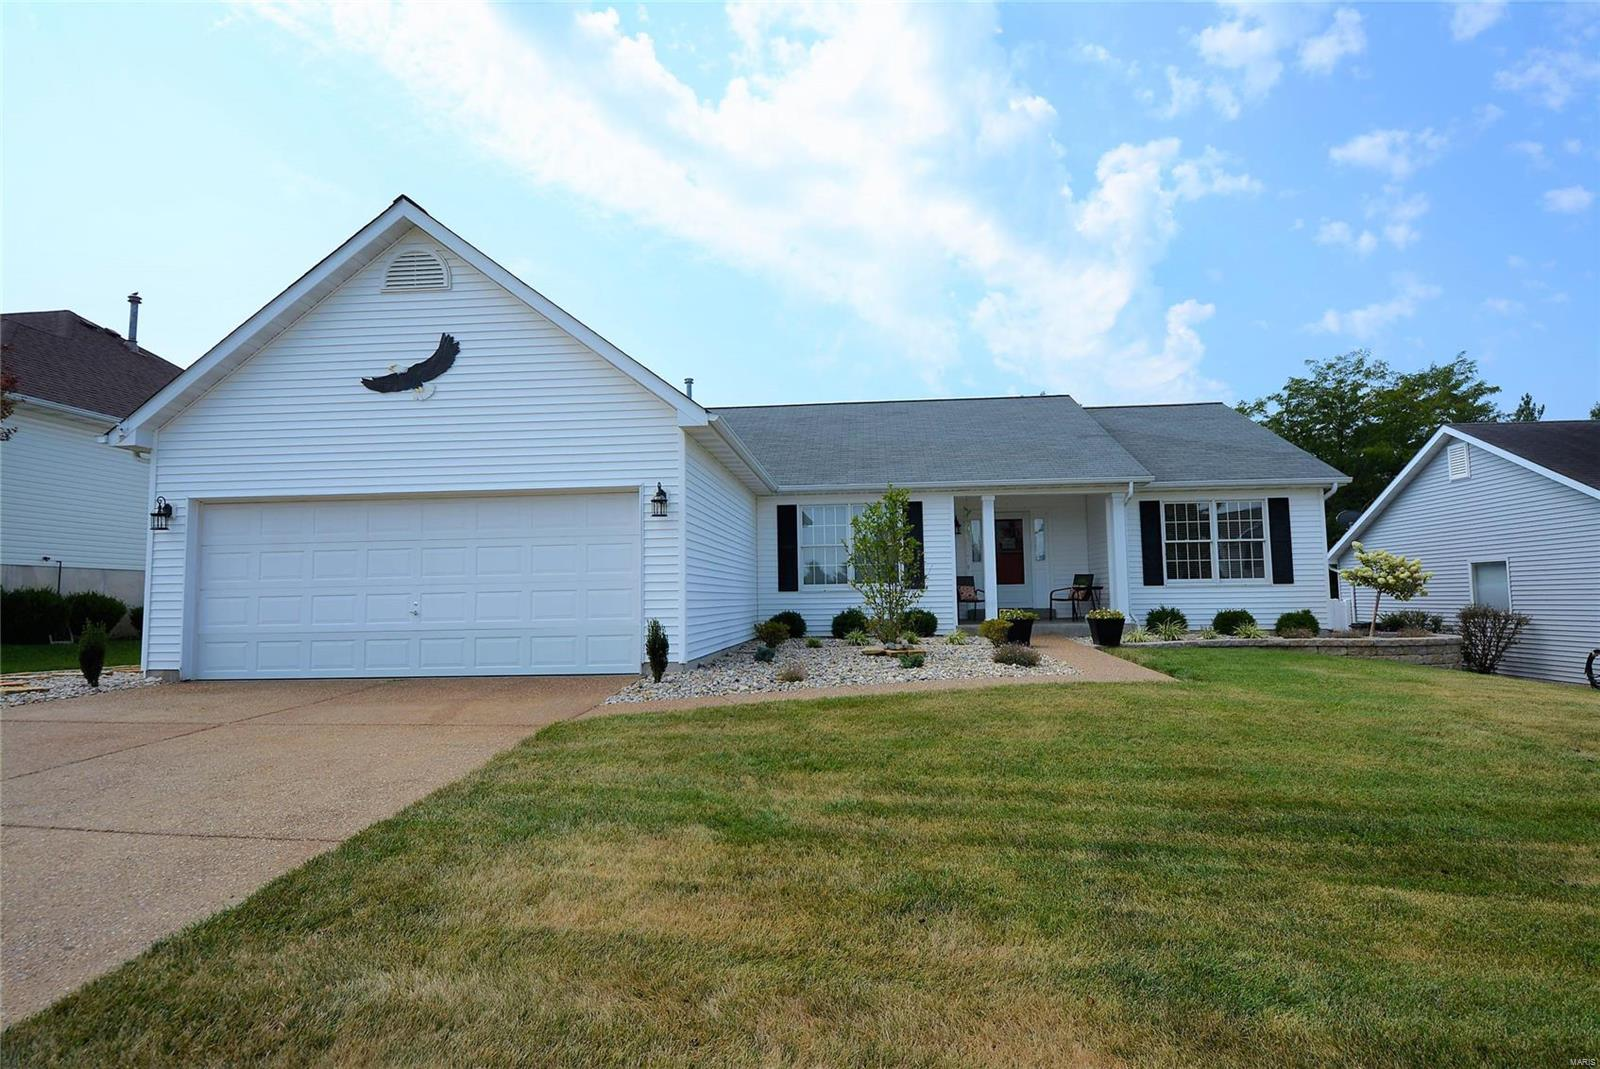 WELCOME HOME to this Fabulously updated, MOVE-IN-READY 3BR 2BTH great rm ranch w/1800+SF in the desirable Golf Club of Wentzville. Nestled on over a quarter acre fenced lvl lot this home has beautiful curb appeal w/vinyl front, lush landscaping & 2 car garage. Walking in you'll find an open floor plan w/the dining rm & spacious vaulted great rm. You'll LOVE the updated eat-in kitchen w/custom white cabinetry, granite countertops, tile backsplash, bkft bar, all new SS appliances & bkft rm w/slider to the new 14'x28' composite deck perfect for morning coffee & outdoor enjoyment. The master suite offers a luxurious updated full BTH w/ dbl sink granite vanity, soaking tub & sep shower. 2 add'l BR, full bth & laundry complete the main. Other features include fresh neutral paint, newer laminate & carpet flooring, newer hot water heater, custom designed blinds & so much more! Great location w/easy access to major hwys, top rated Wentzville School District, shopping & restaurants. A MUST SEE!